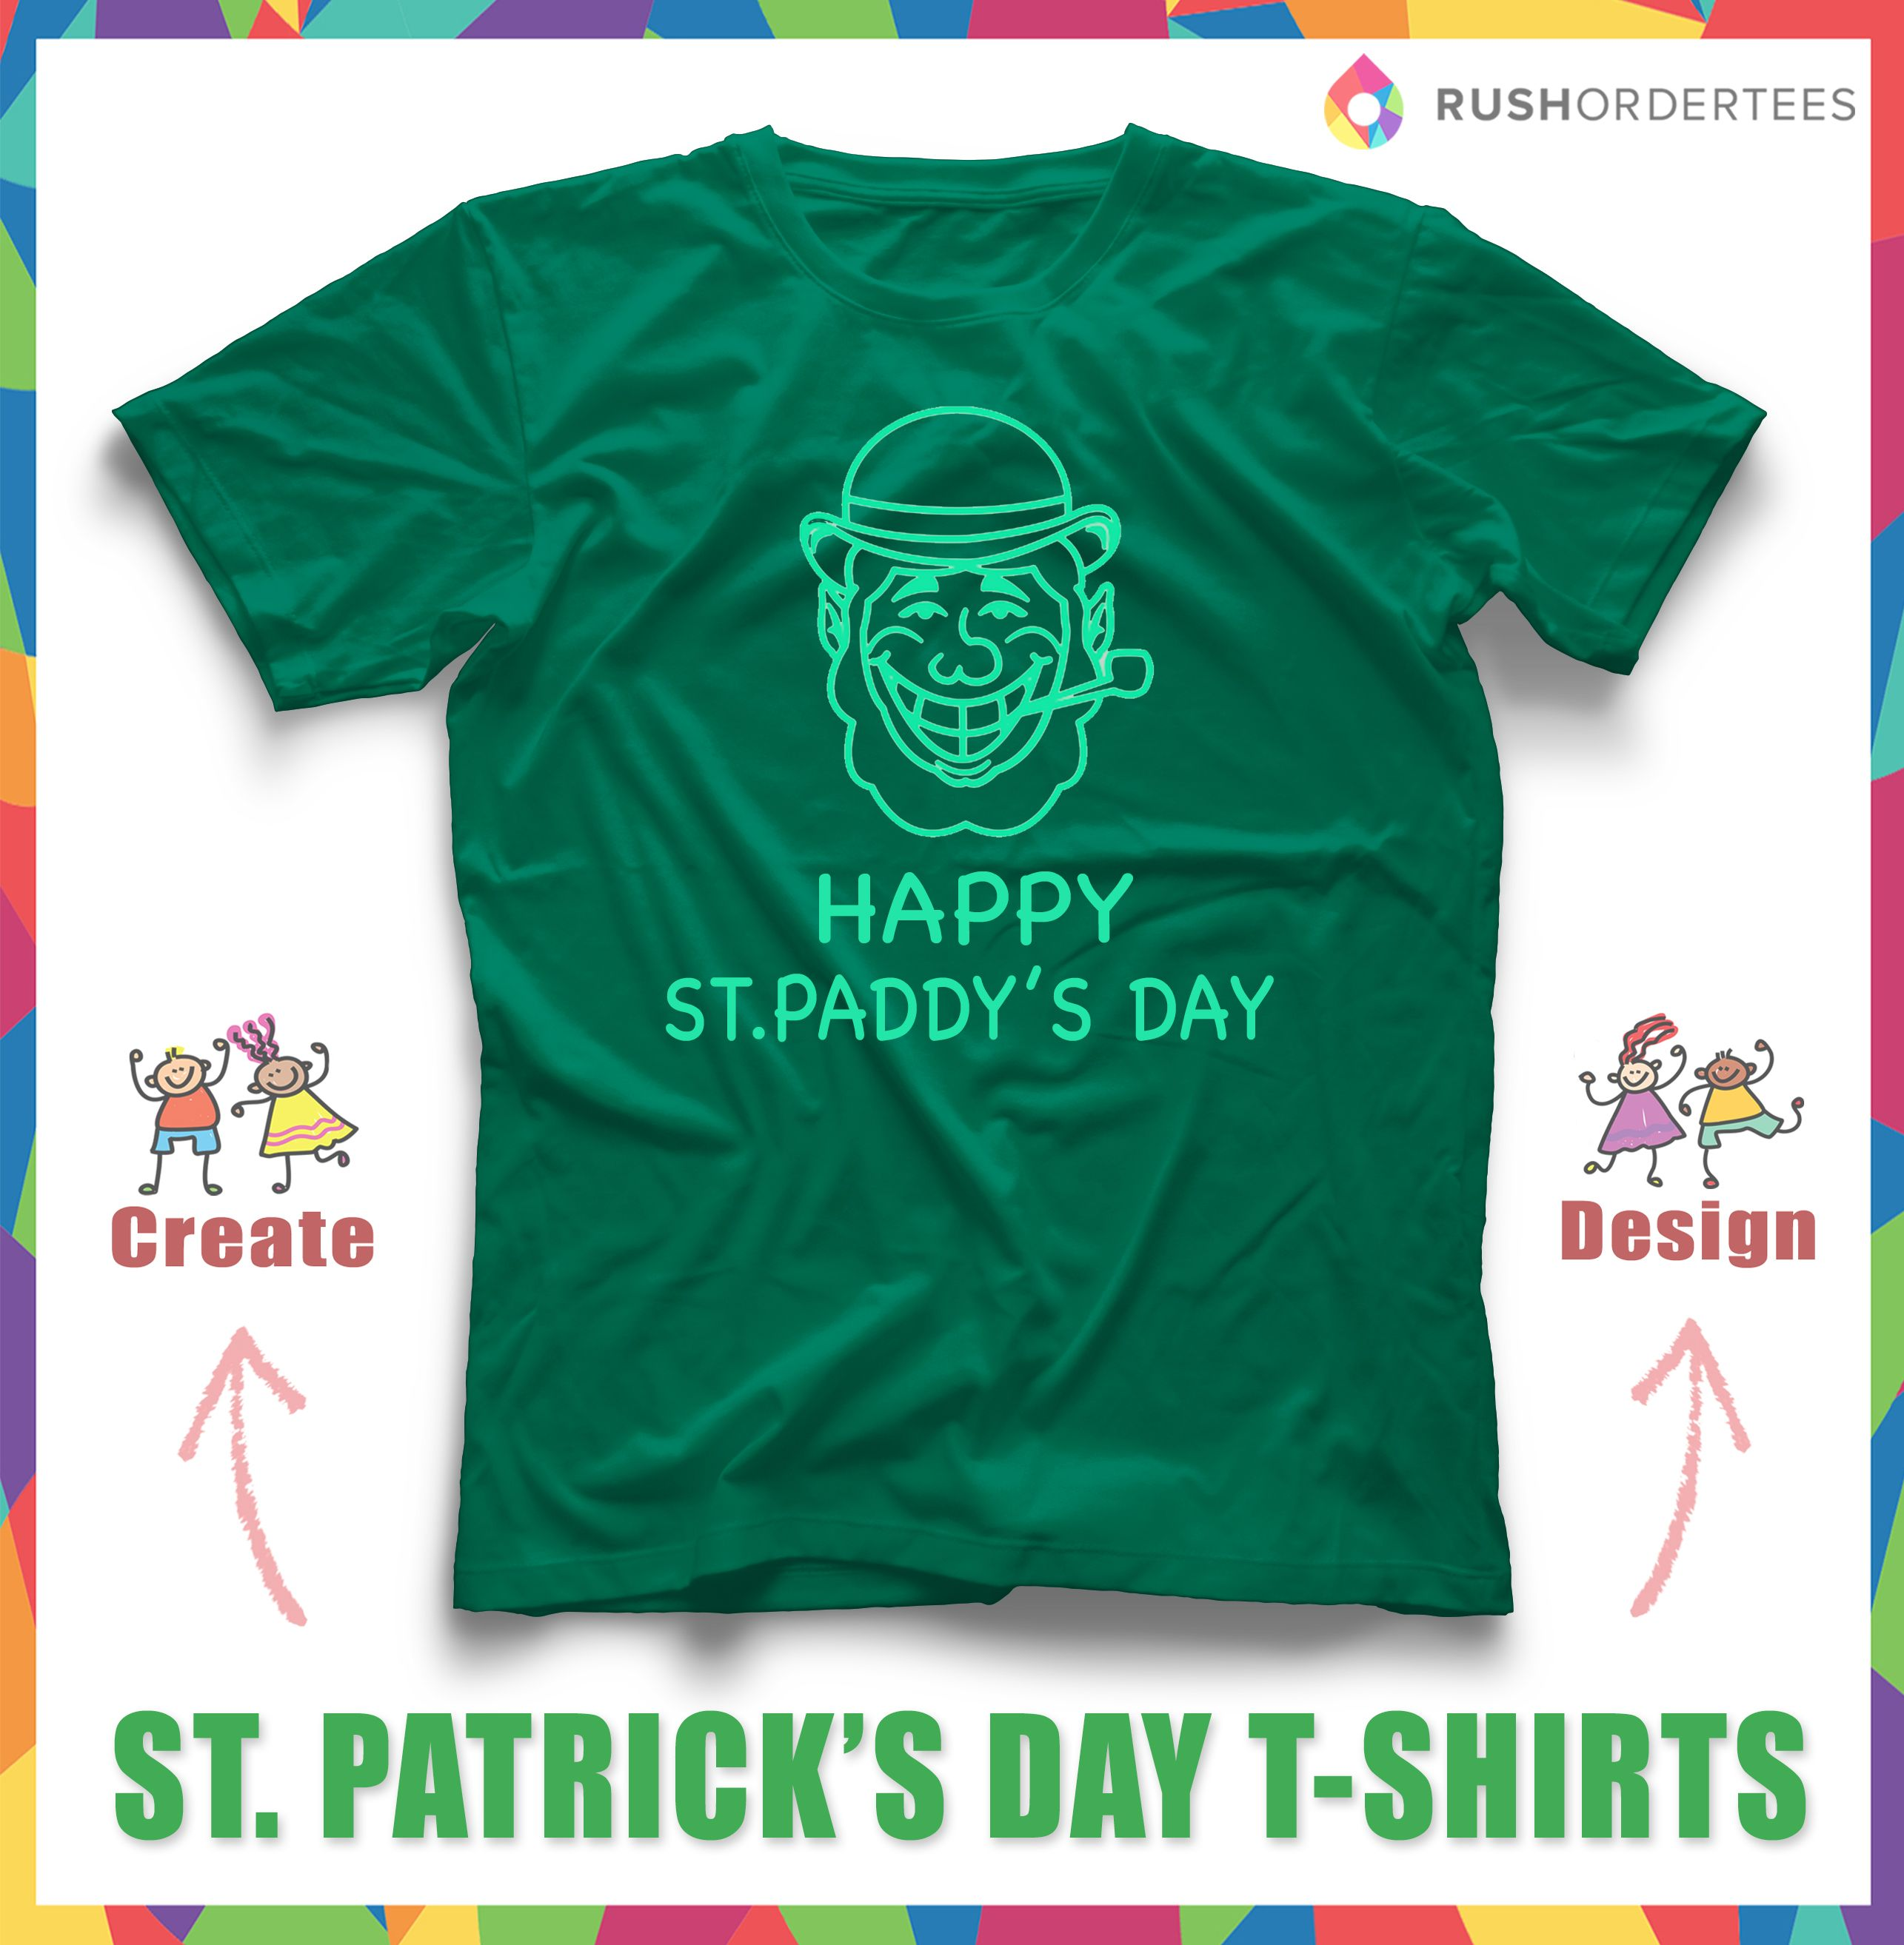 90e2ceee Show your St. Patrick's Day Spirit with a custom t-shirt! Design Online at  rushordertees.com #stPatricksDay #customshirt